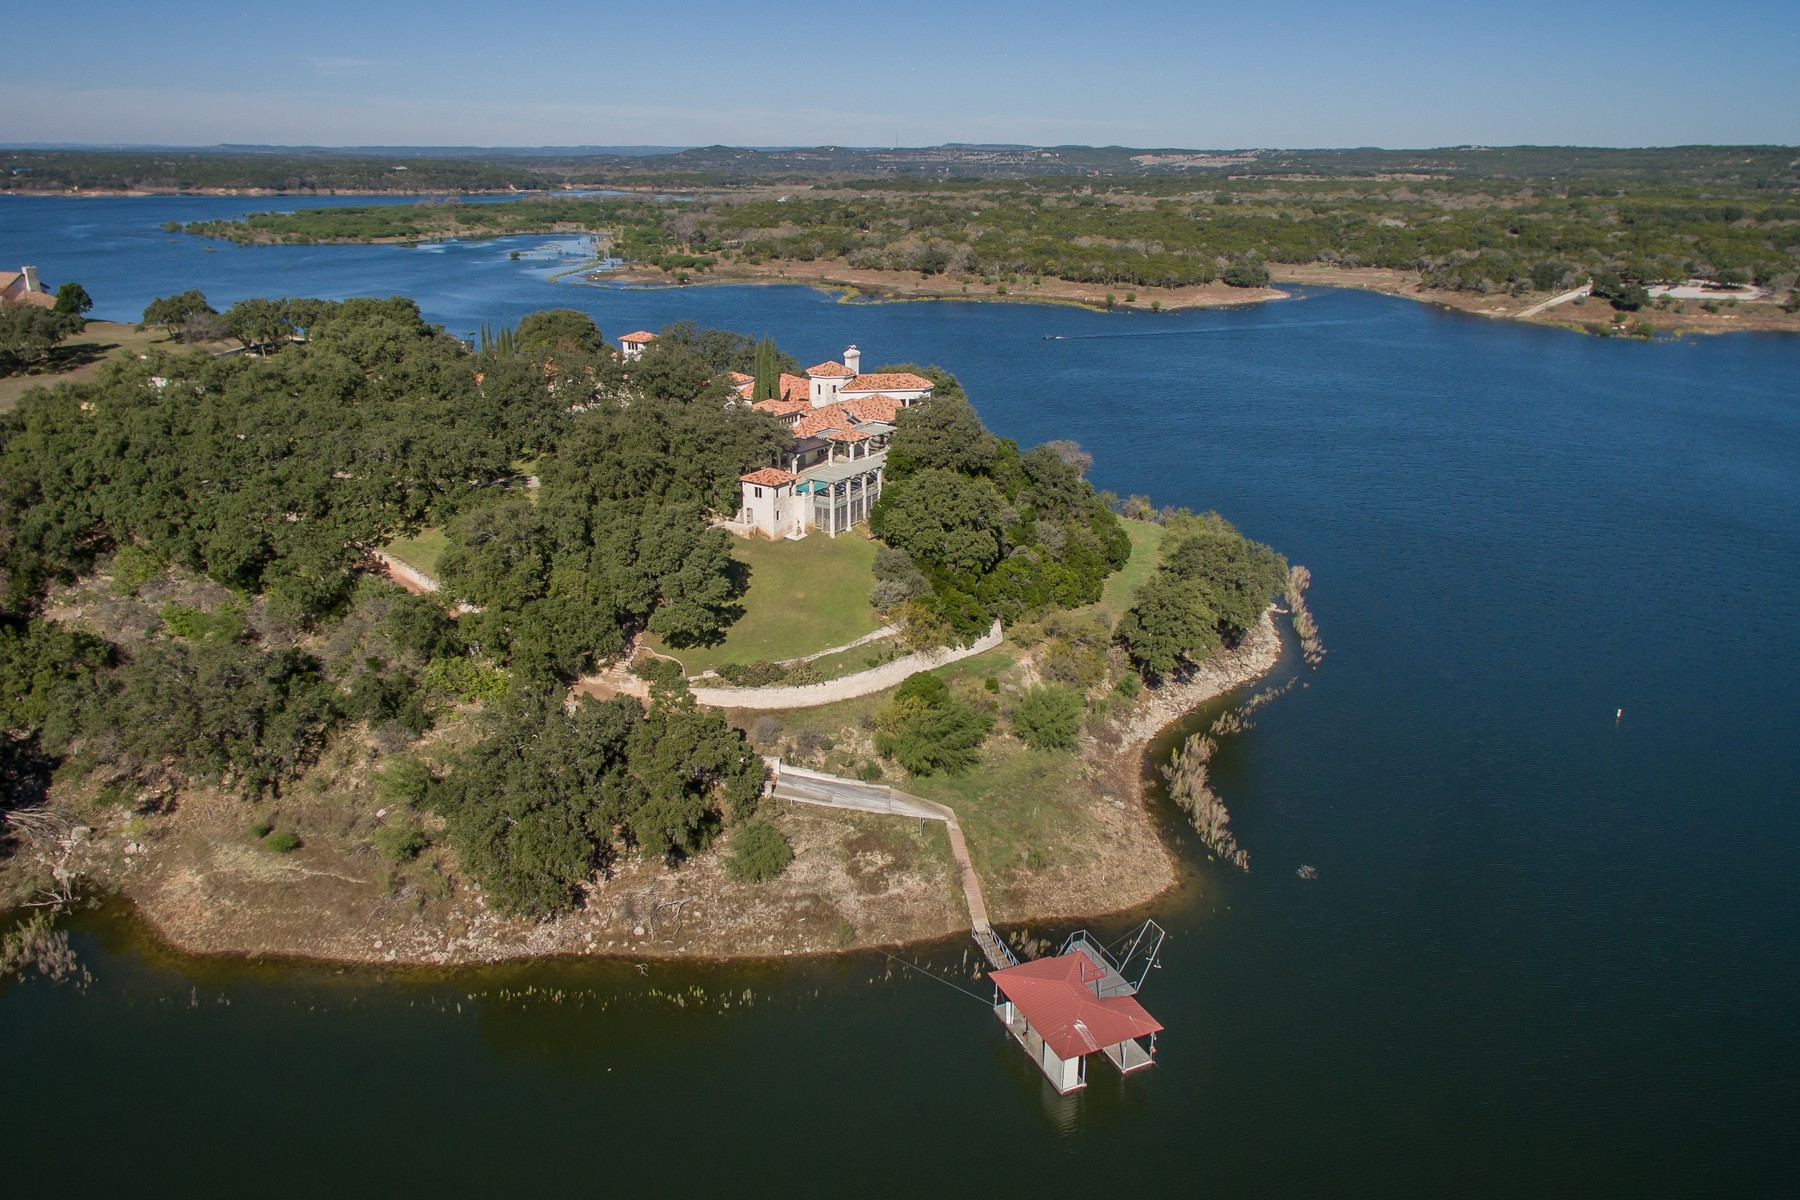 단독 가정 주택 용 매매 에 Gated Estate on Lake Travis Peninsula 26100 Countryside Dr Spicewood, 텍사스, 78669 미국